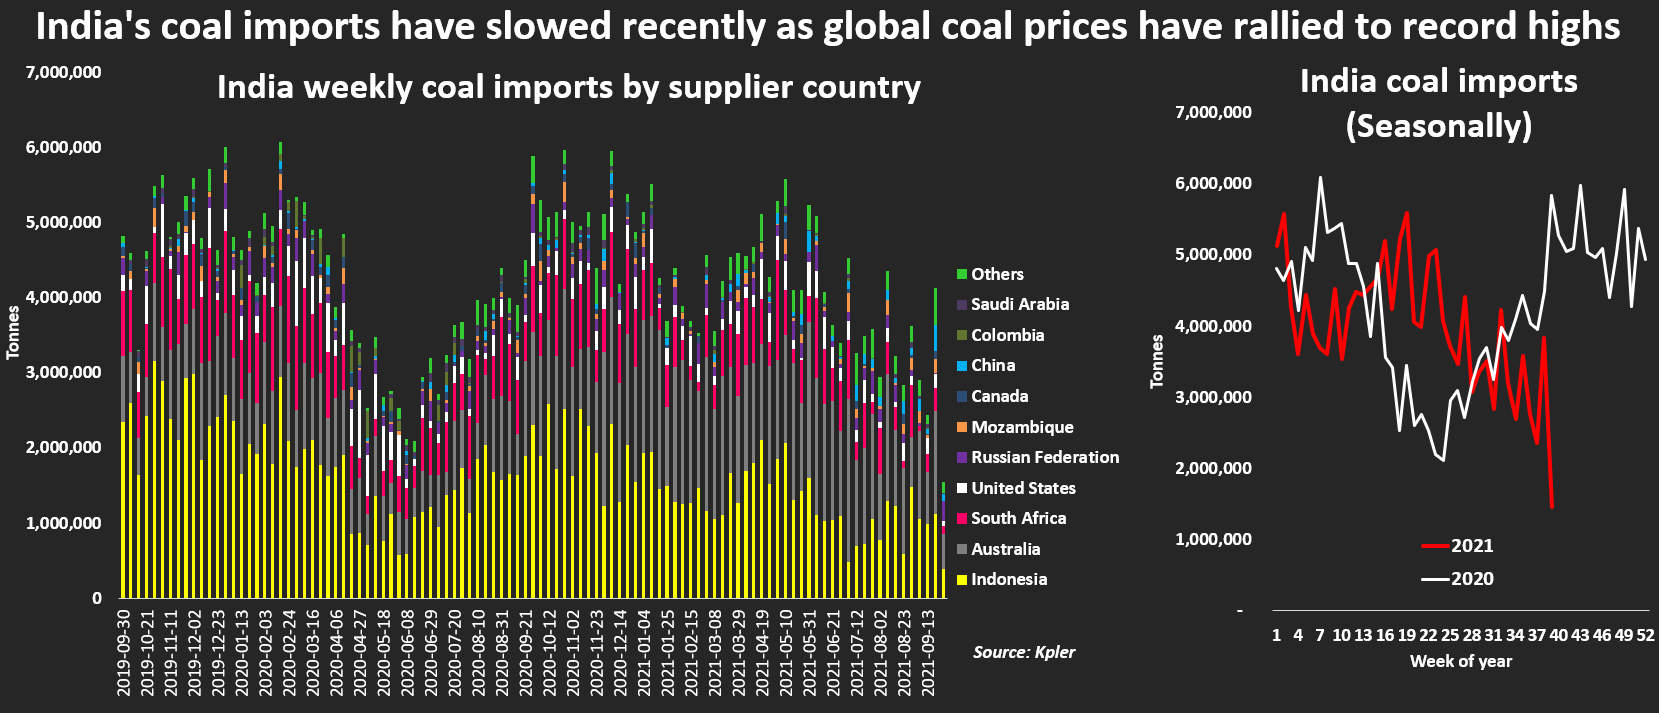 India coal imports by supplier